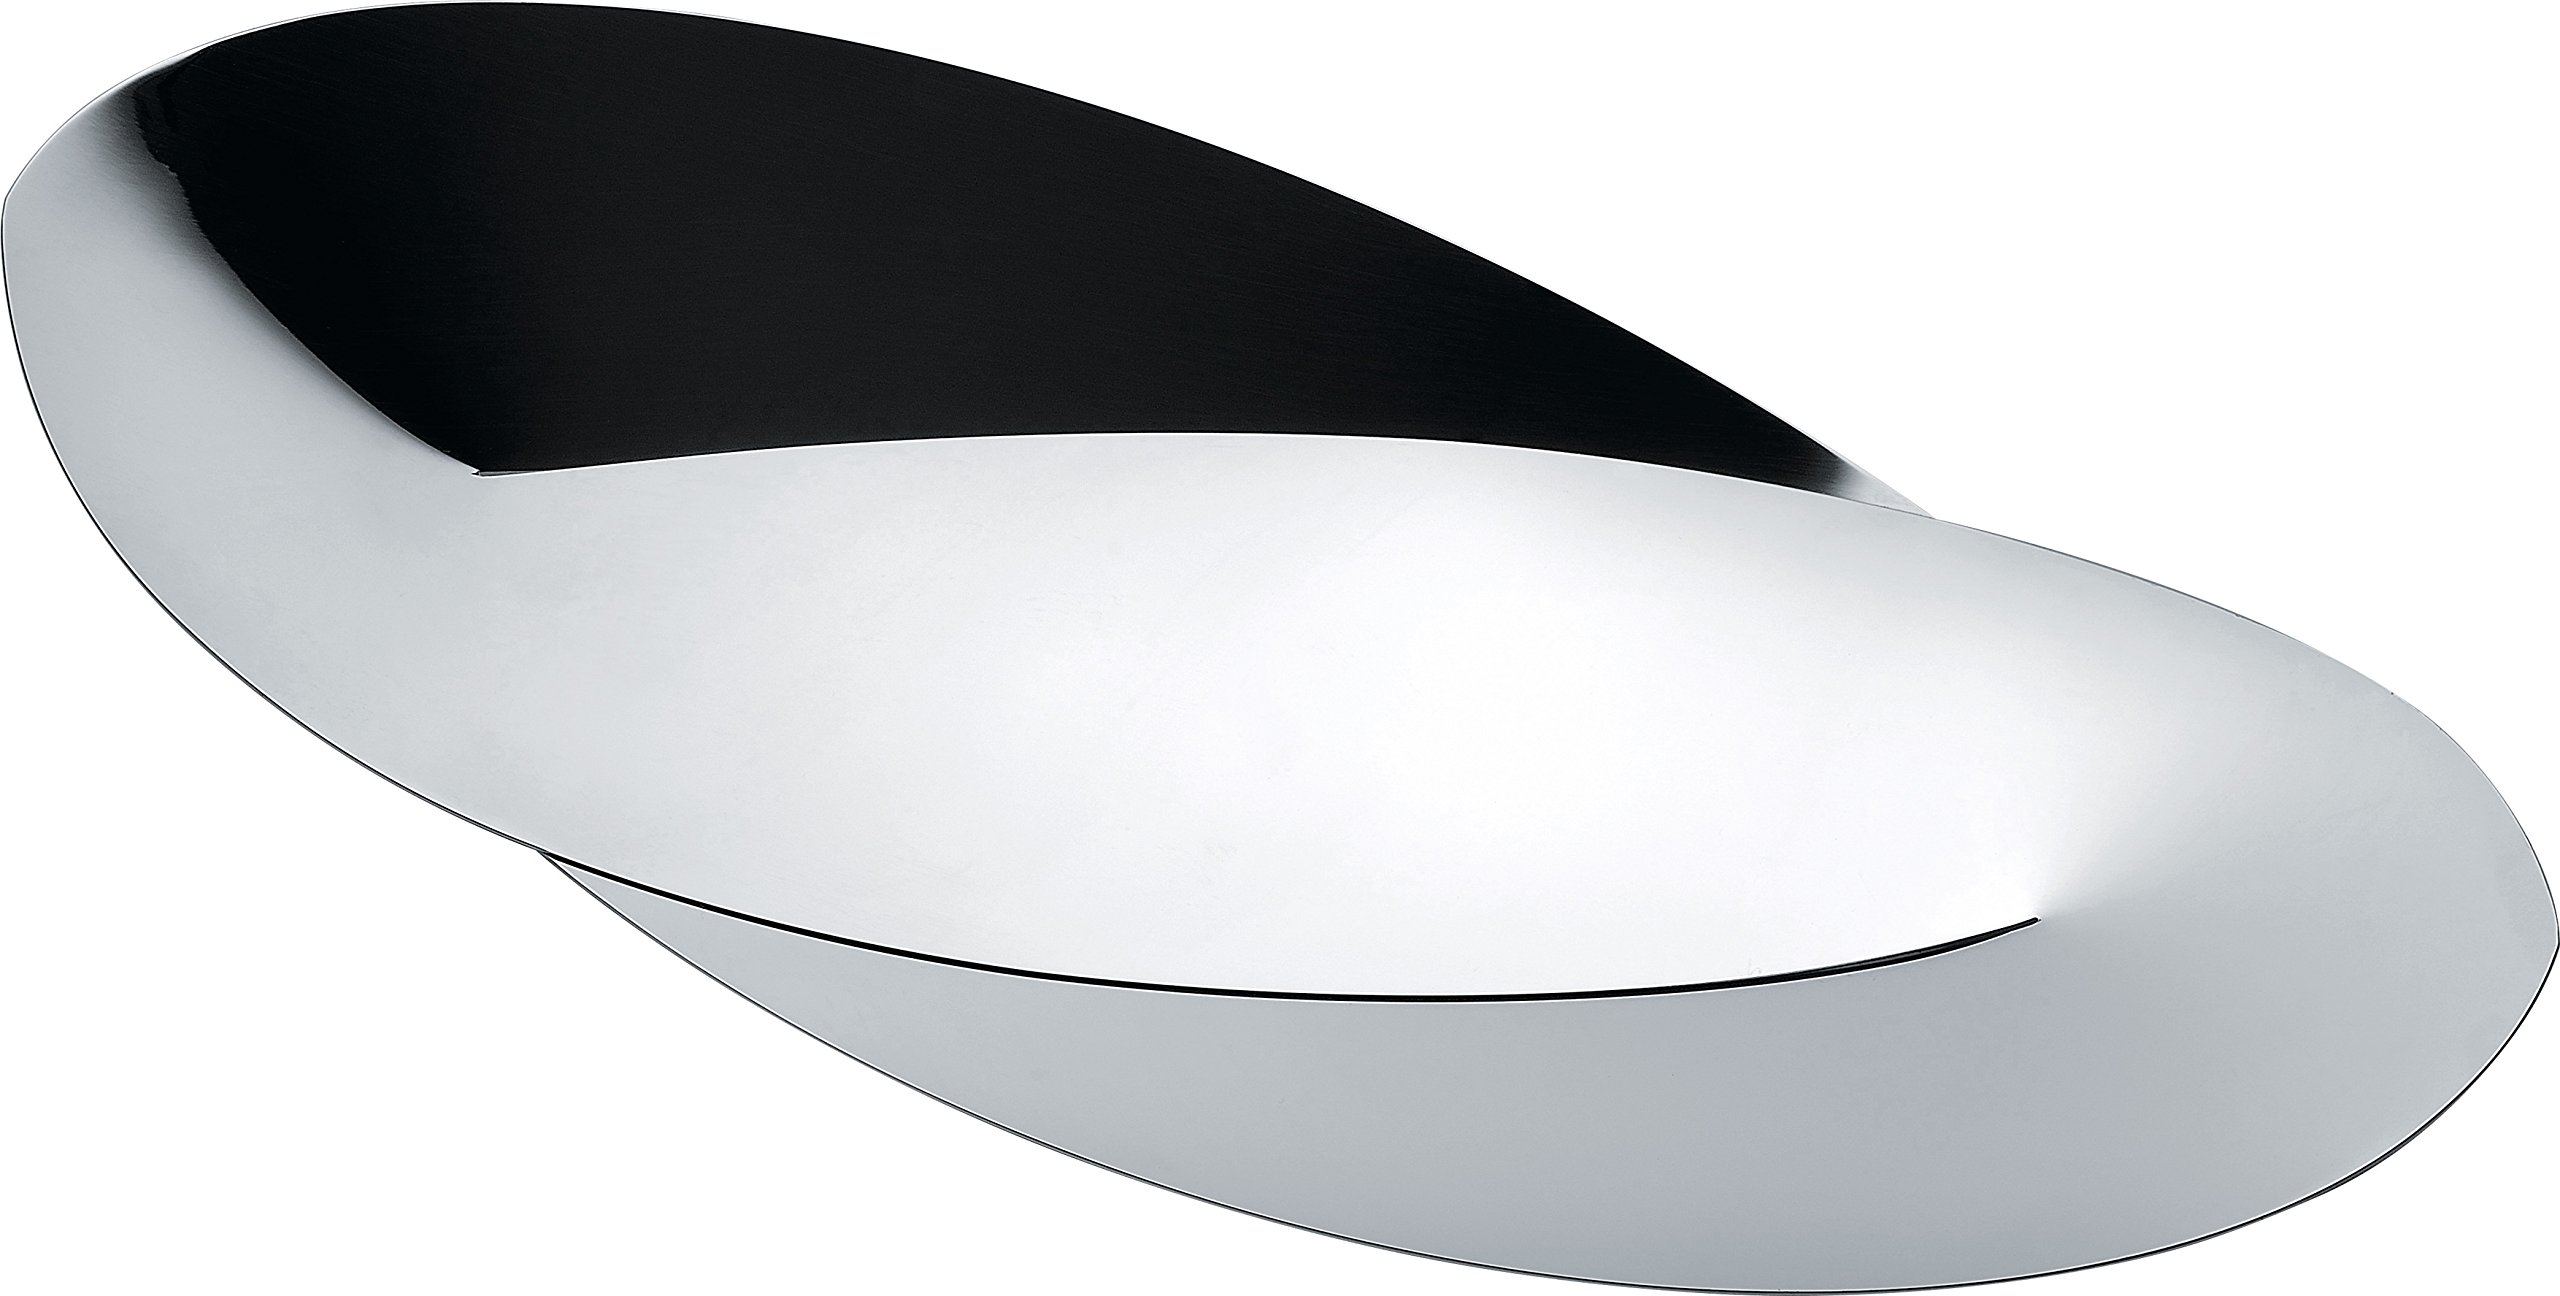 Alessi''Octave'' Bread And Breadstick Basket in 18/10 Stainless Steel Mirror Polished, Silver